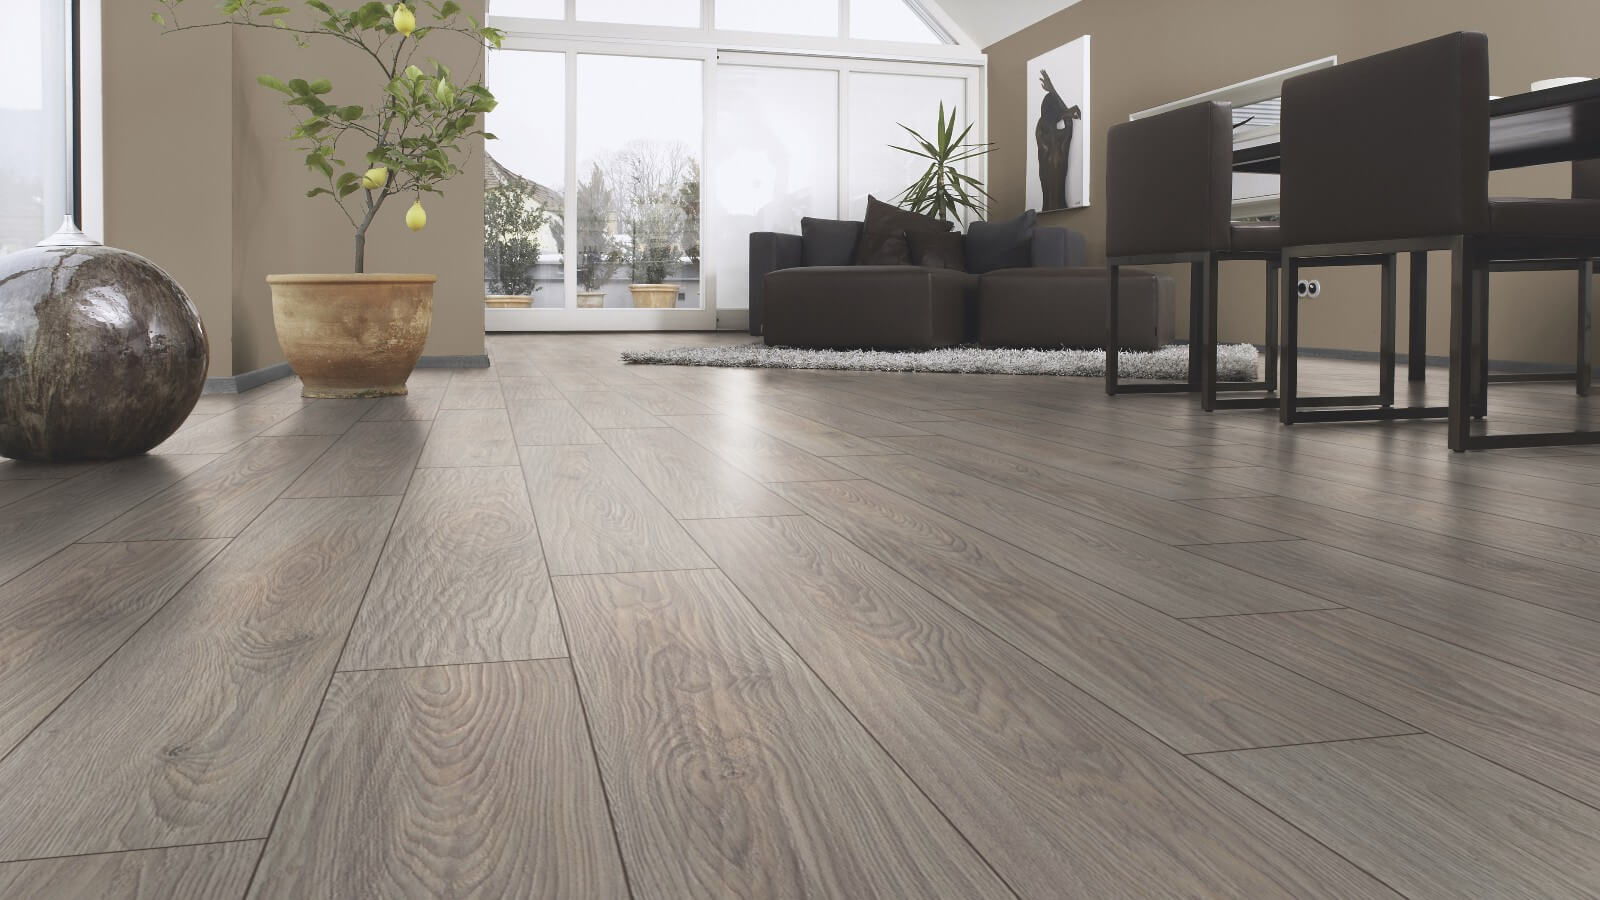 Laminat Modern Laminate Floor Finishing Types, Description, Properties